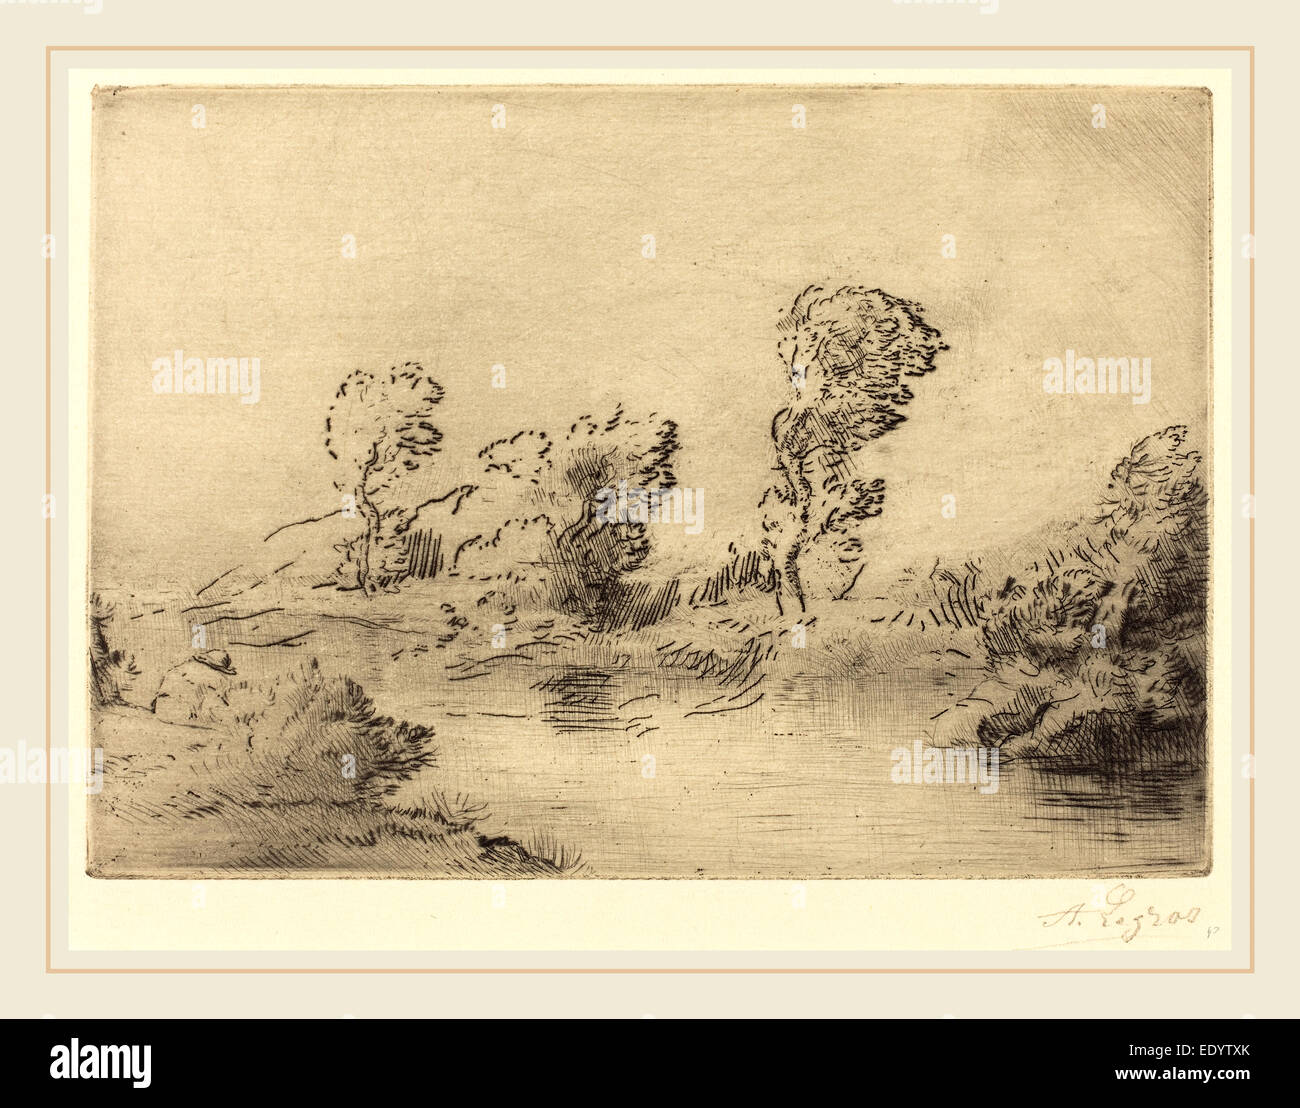 Alphonse Legros, Banks of the Marne (Bord de la Marne), French, 1837-1911, drypoint and (etching?) - Stock Image